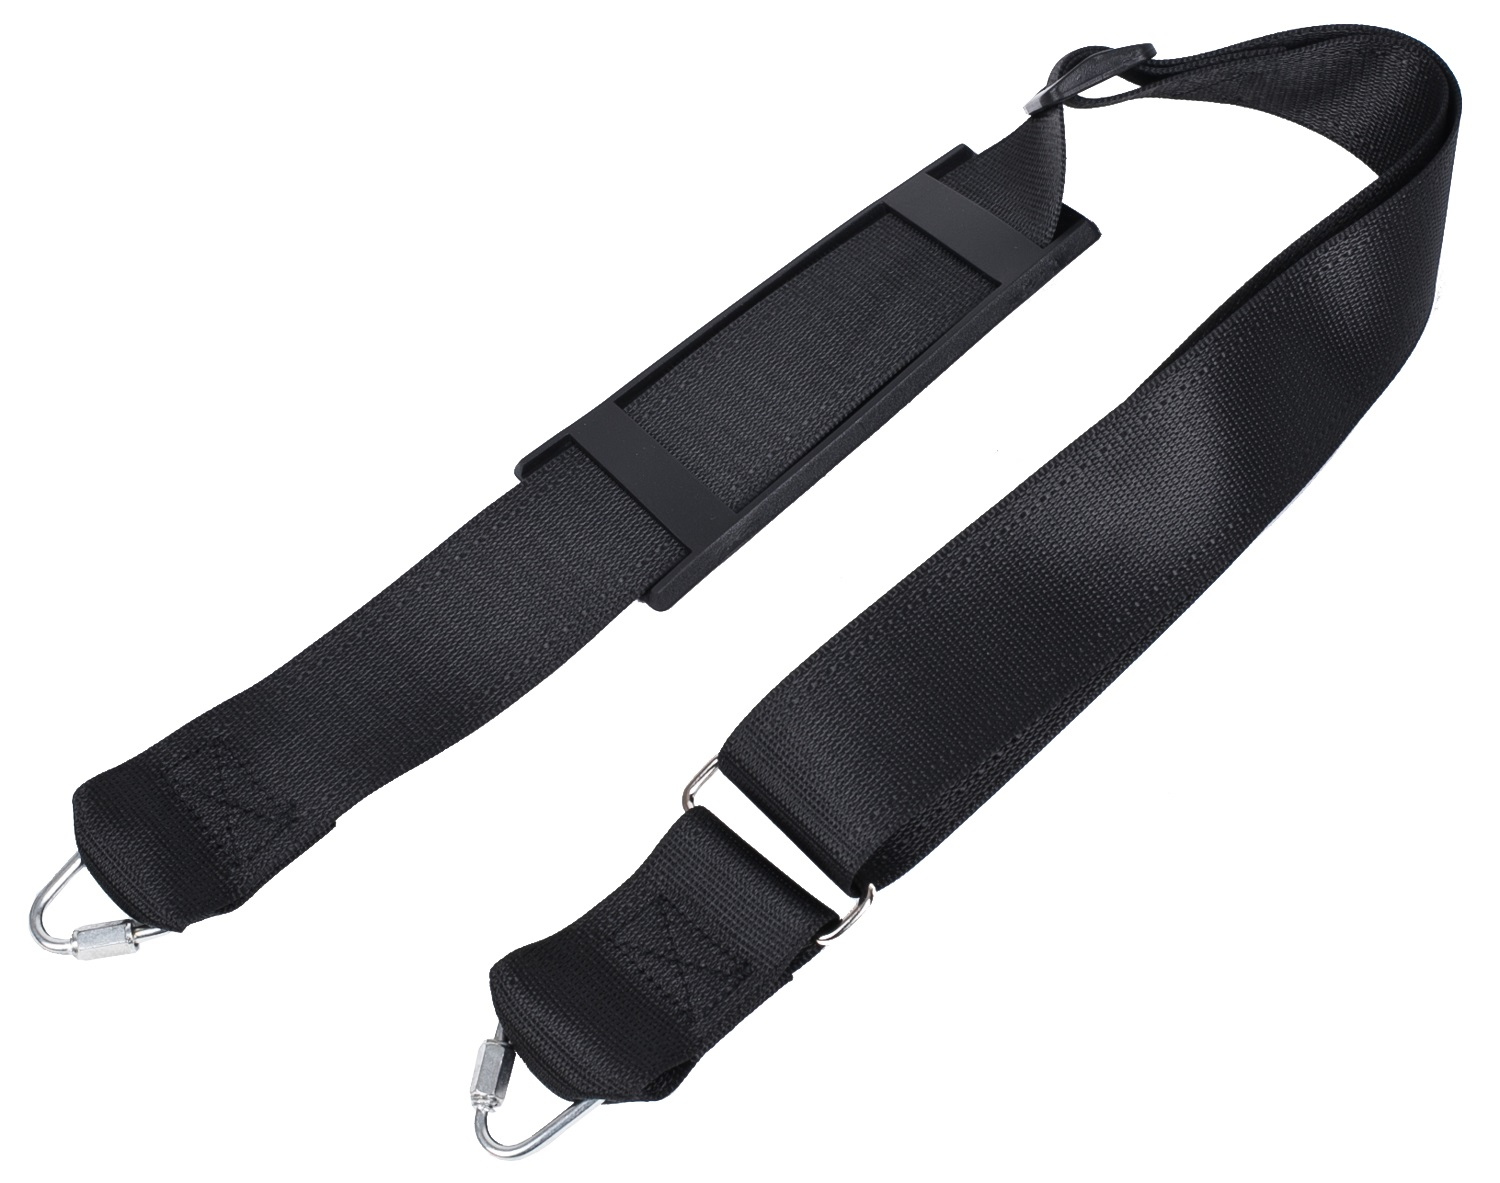 Hiscox Pro-II Carrying Strap